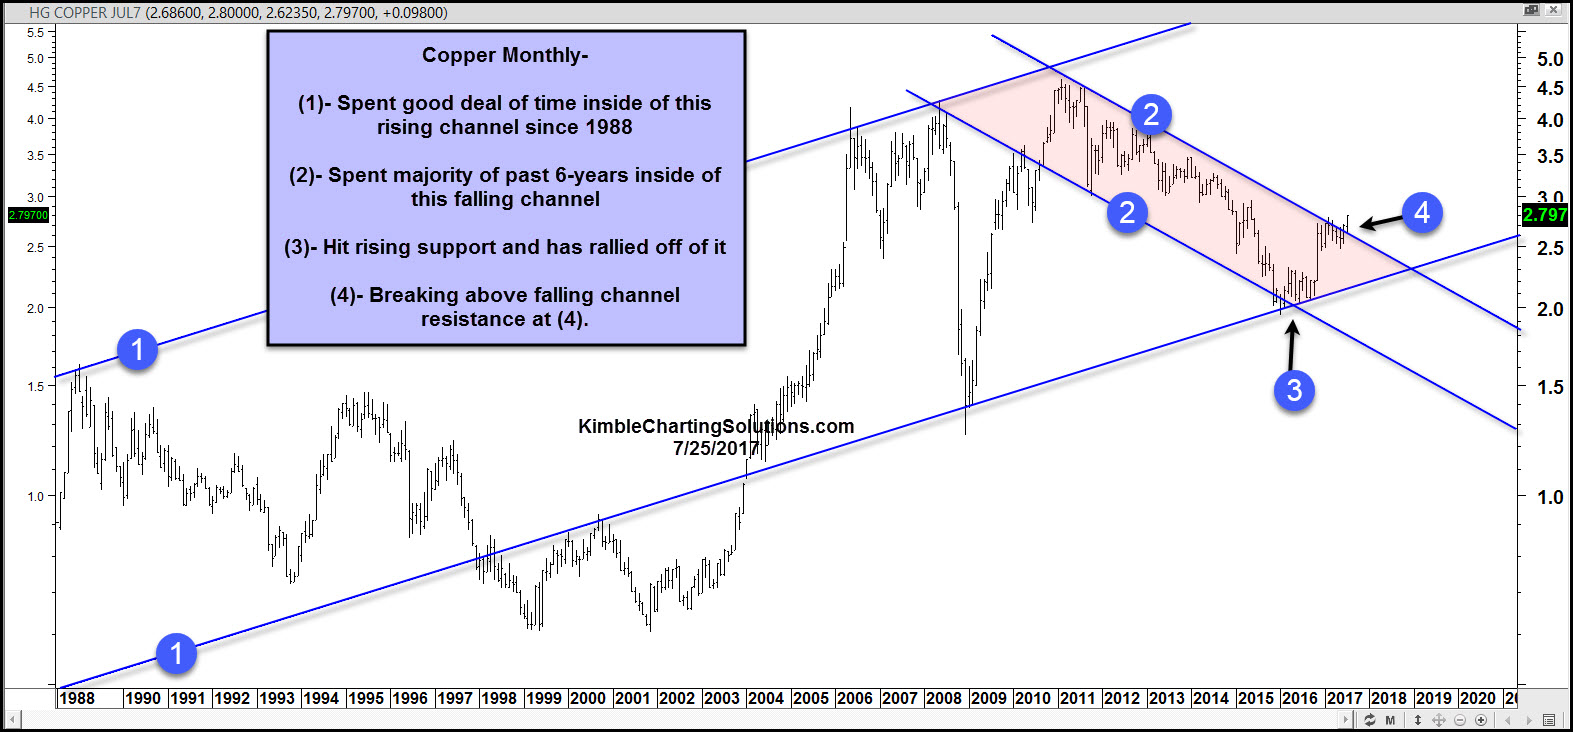 Chart of Copper Monthly Kimble Charting Solutions